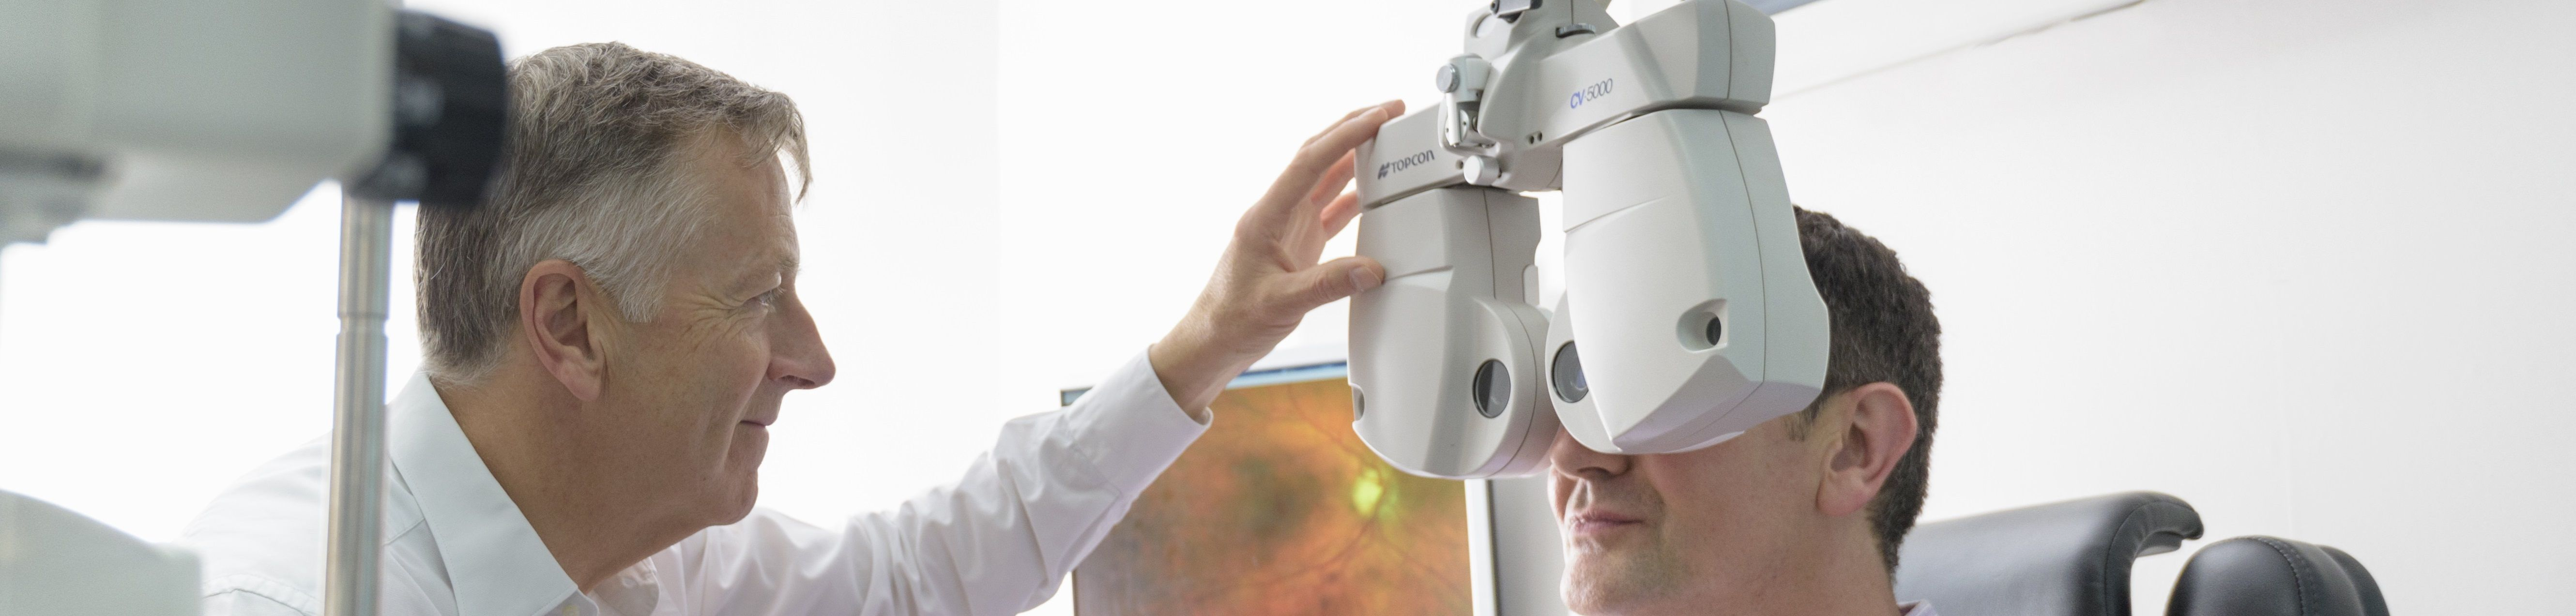 What to expect in an eye exam